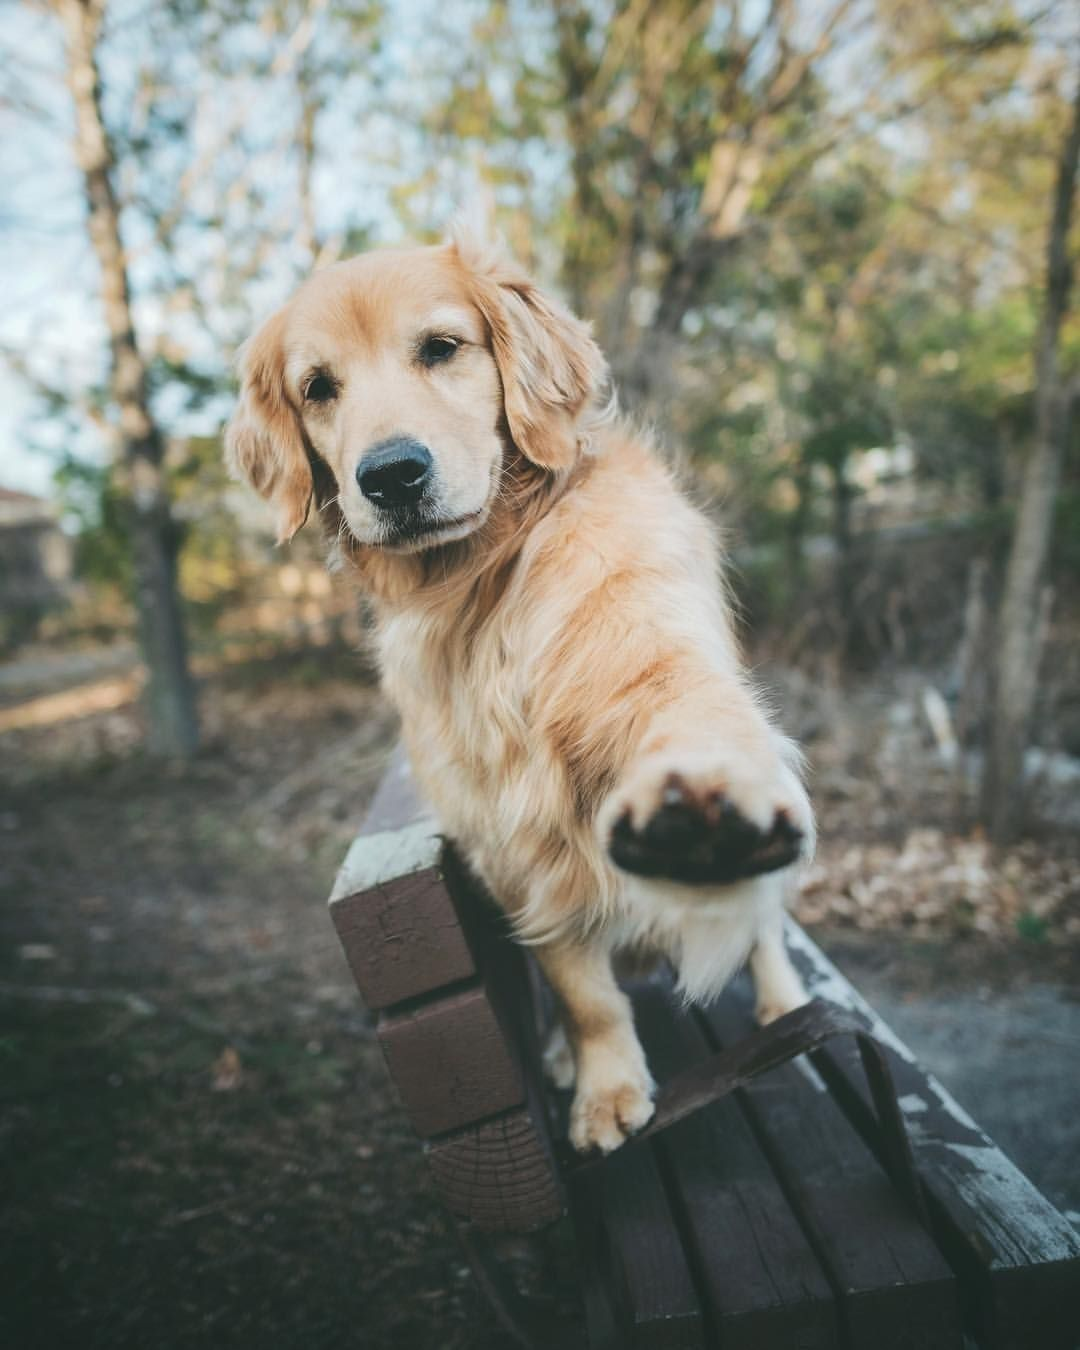 Hi There Love Me Baby Dogpictures Dogs Aww Cuteanimals